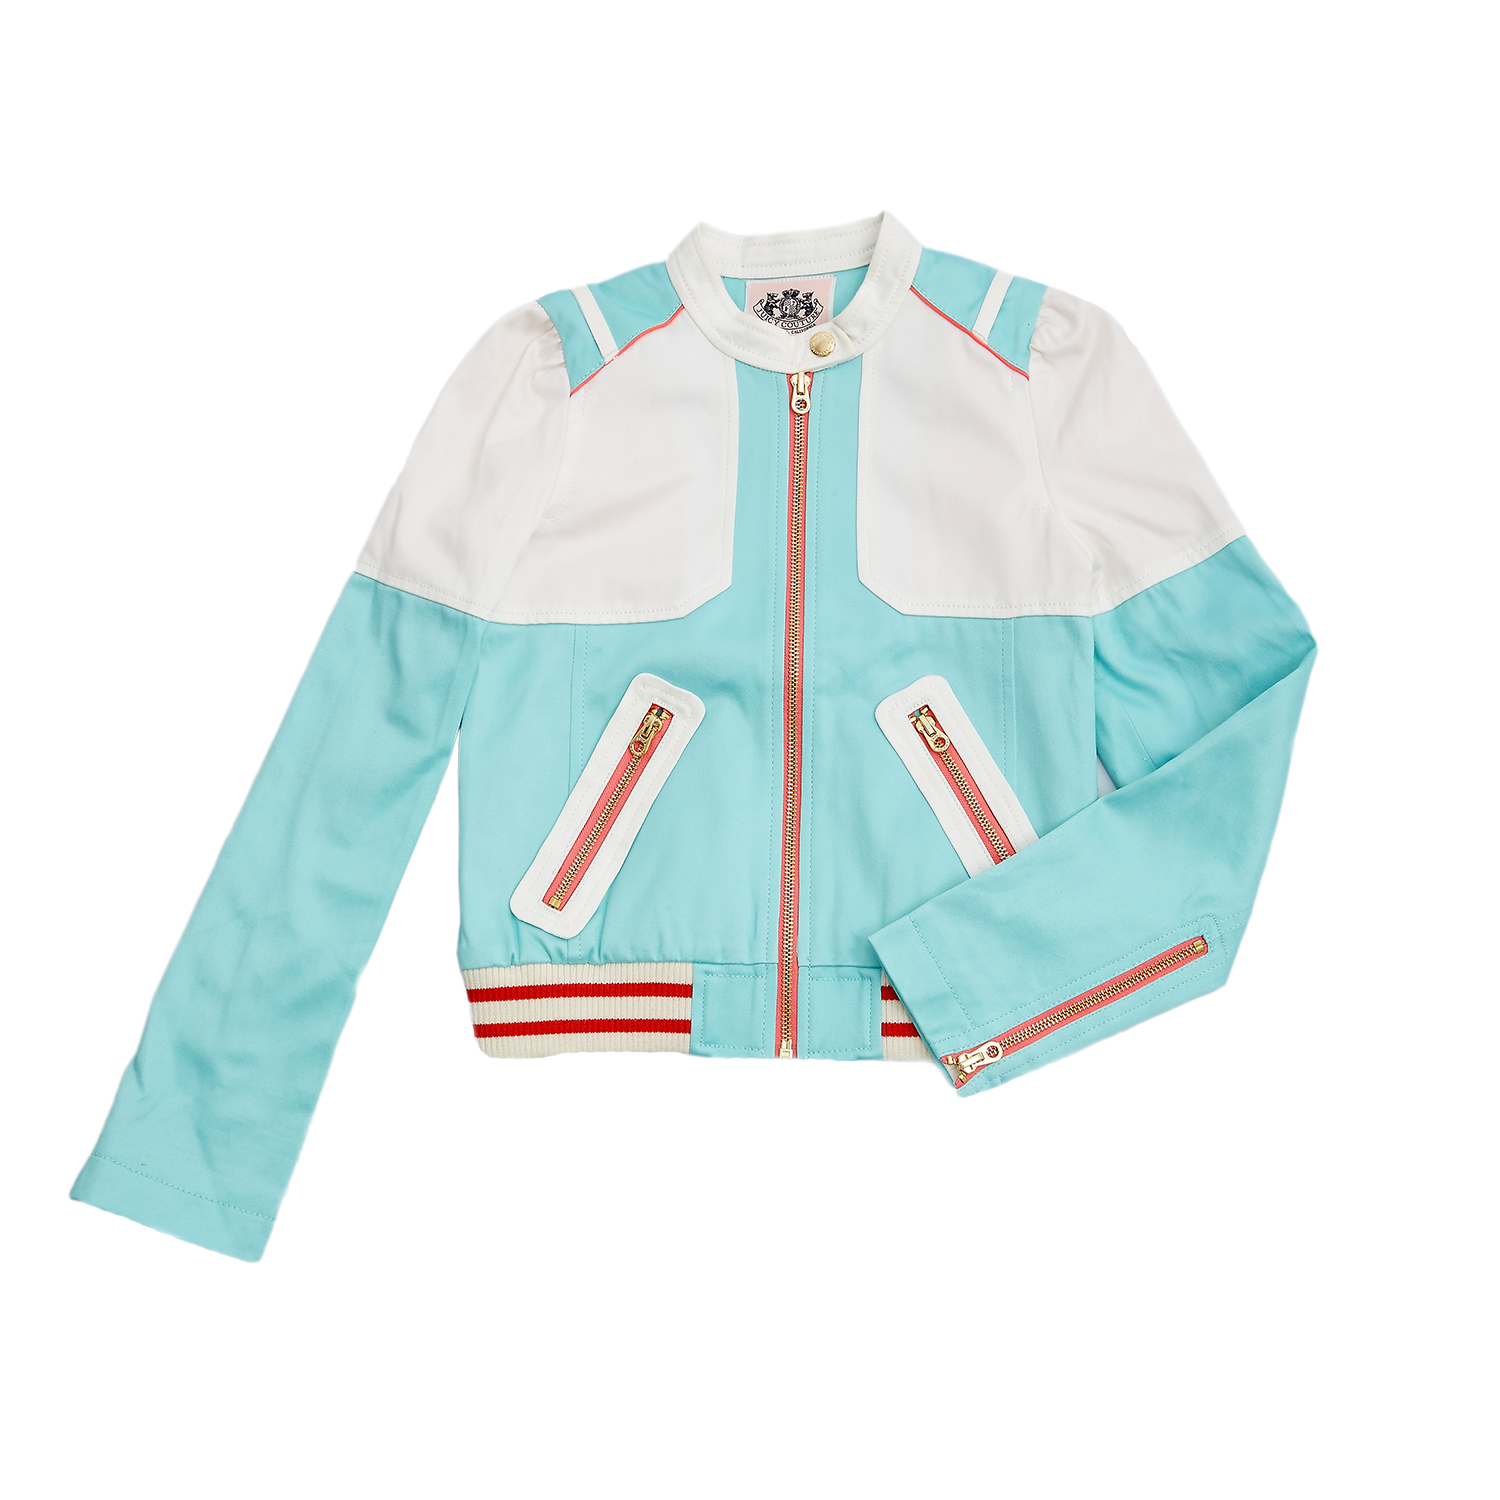 JUICY COUTURE KIDS - Παιδικό μπουφάν Juicy Couture λευκό-τυρκουάζ 19b0a14564a